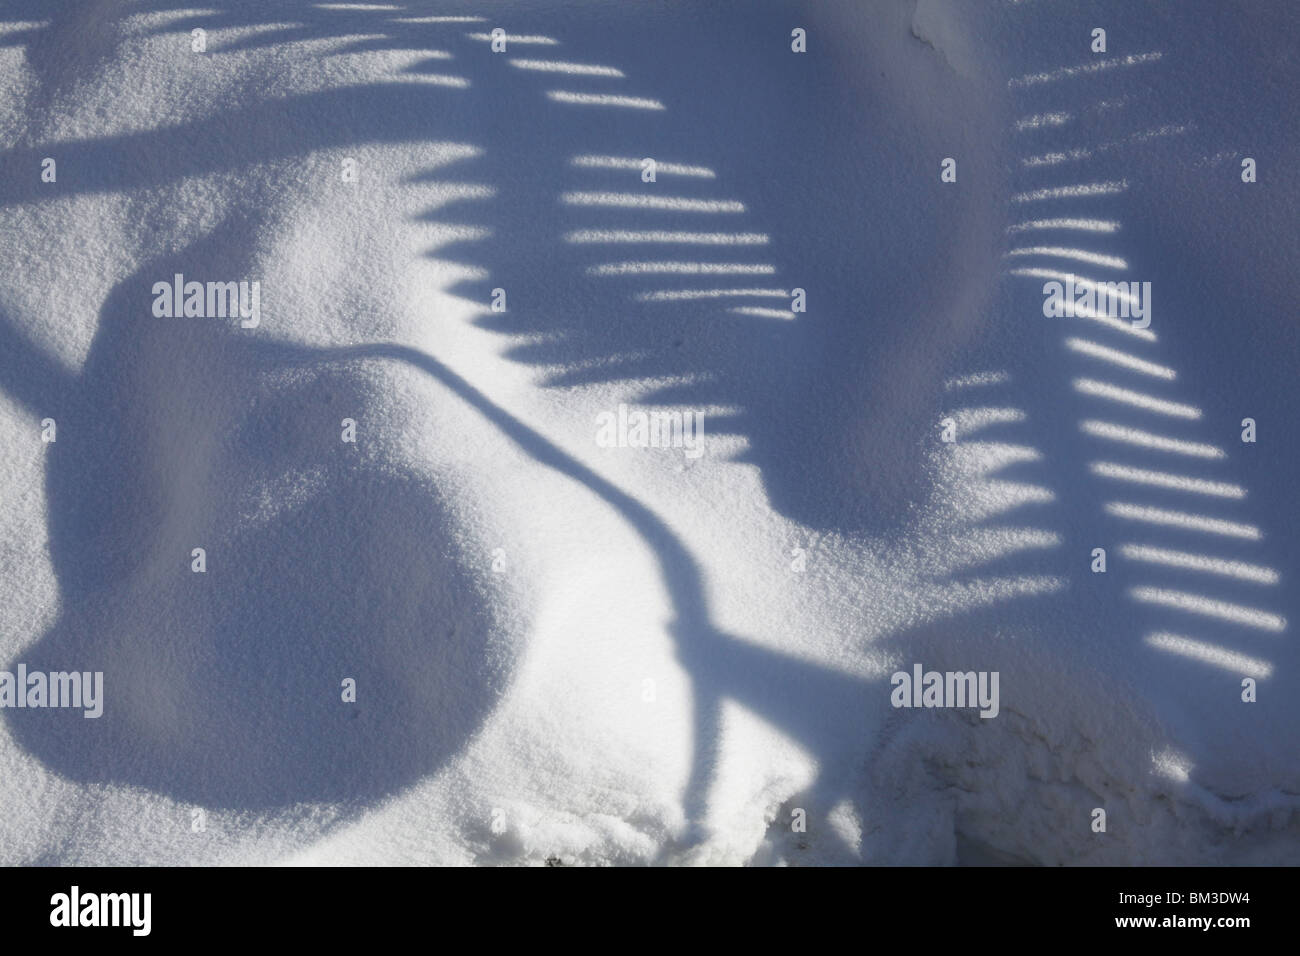 winter snow covered frozen fence shadow shadows cast cool light Kajaani Finland city centre - Stock Image